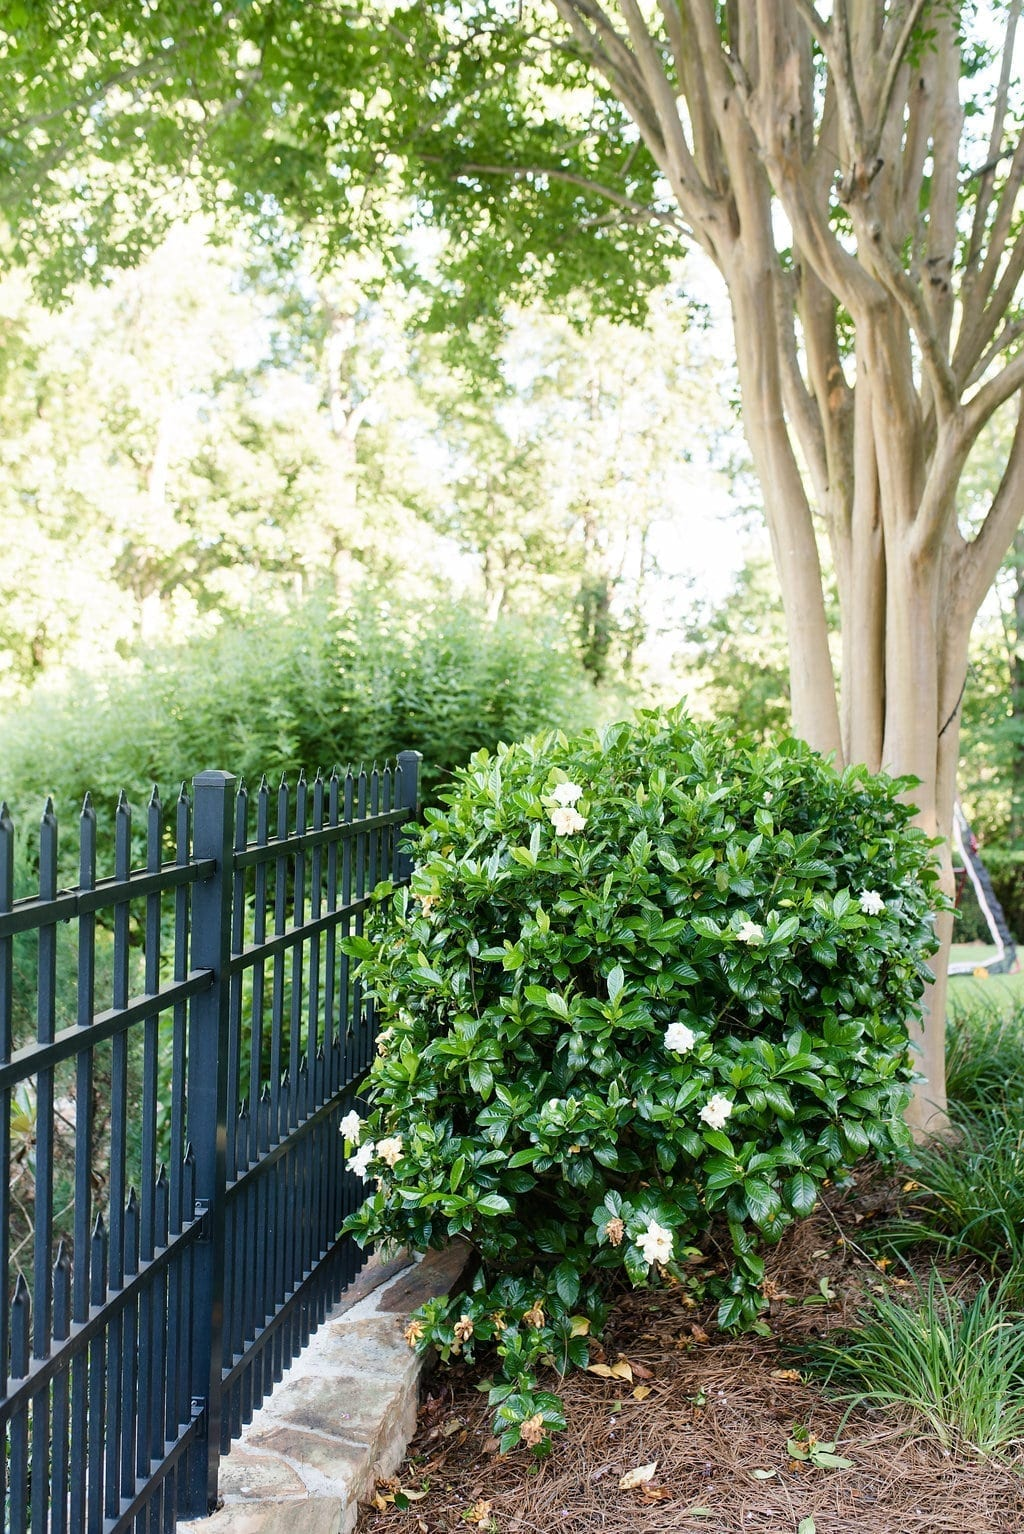 Gardenia Bushes size and how large mine are in our Atlanta, Georgia yard.